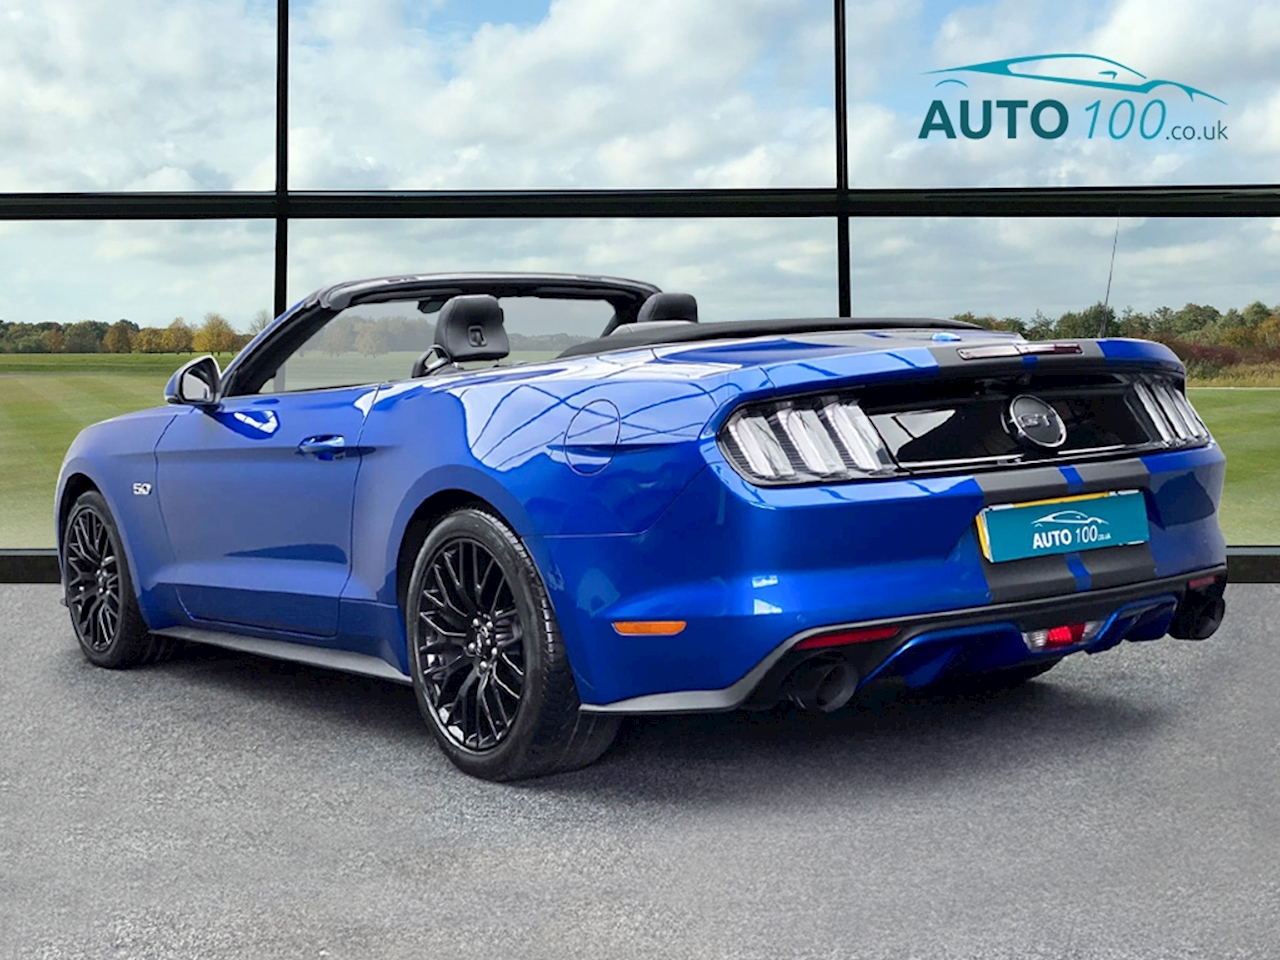 Ford Mustang GT Convertible 5.0 SelShift Petrol